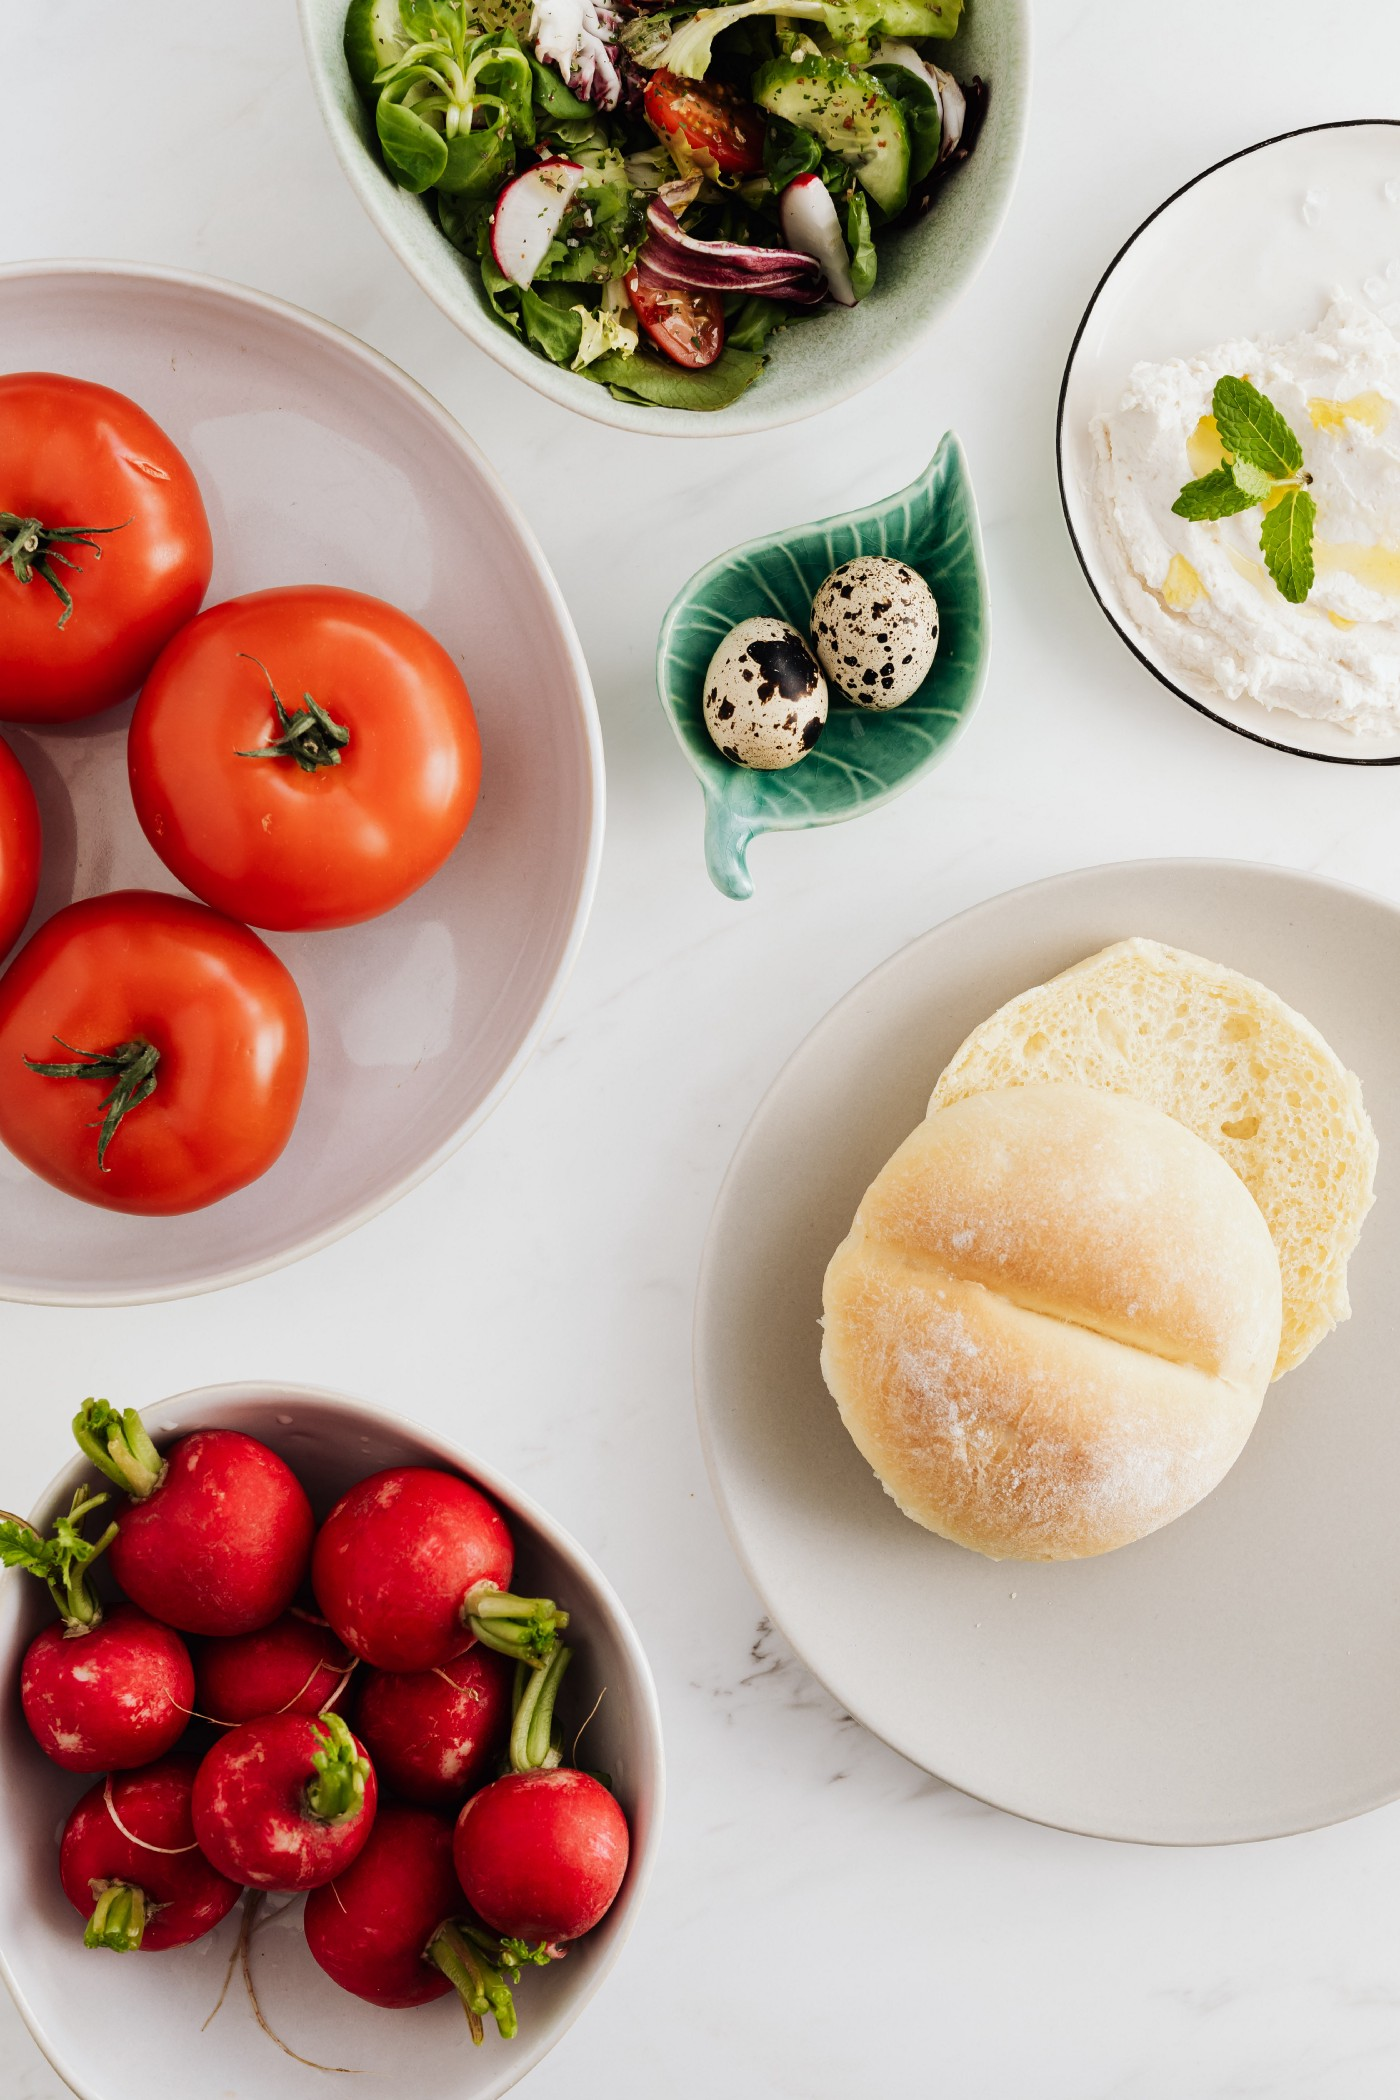 A table with vegetarian food- tomatoes, breads, etc